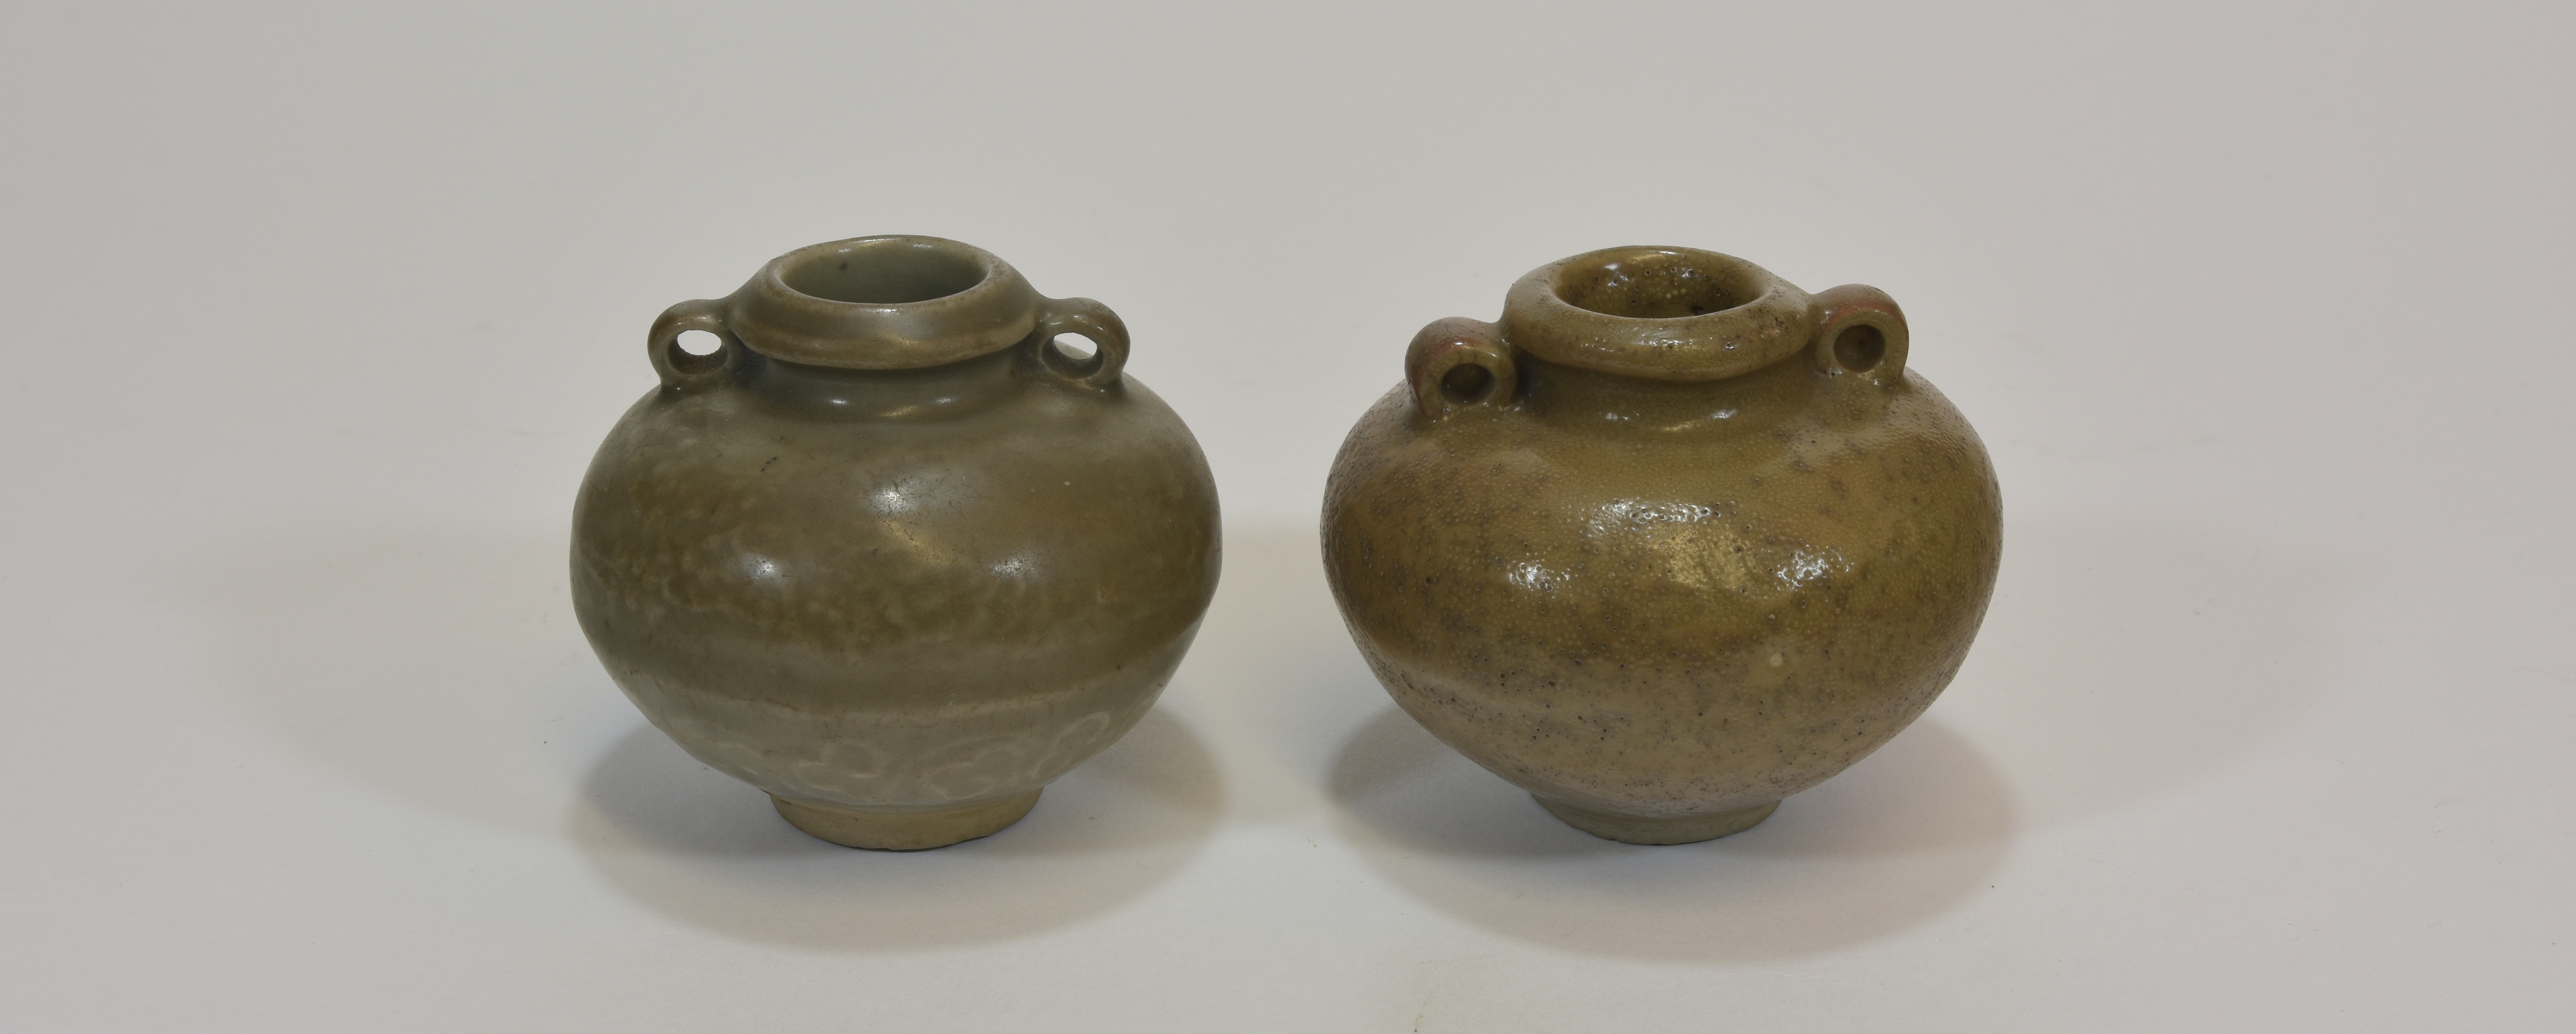 Lot 20 - Two 14th - 15th century celadon jars 7-8cm tall (2)宋朝時期 龍泉釉小罐两个